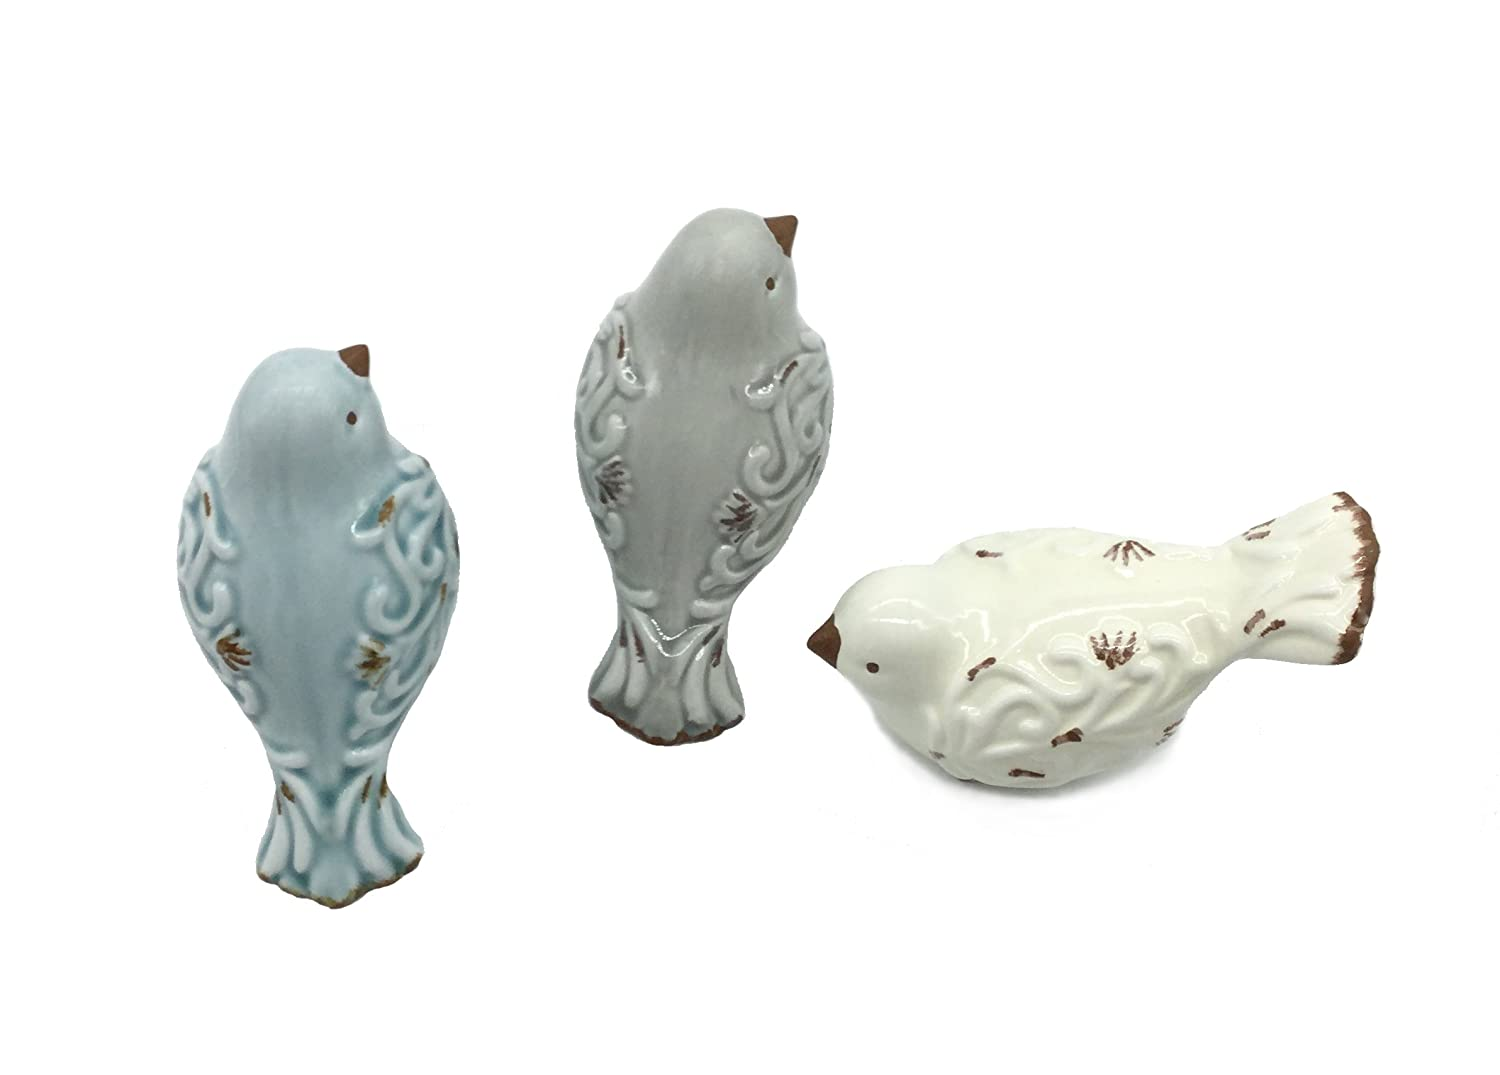 FICITI Distressed Finish Ceramic Bird Figurine Home Decor - Assorted Set of 3